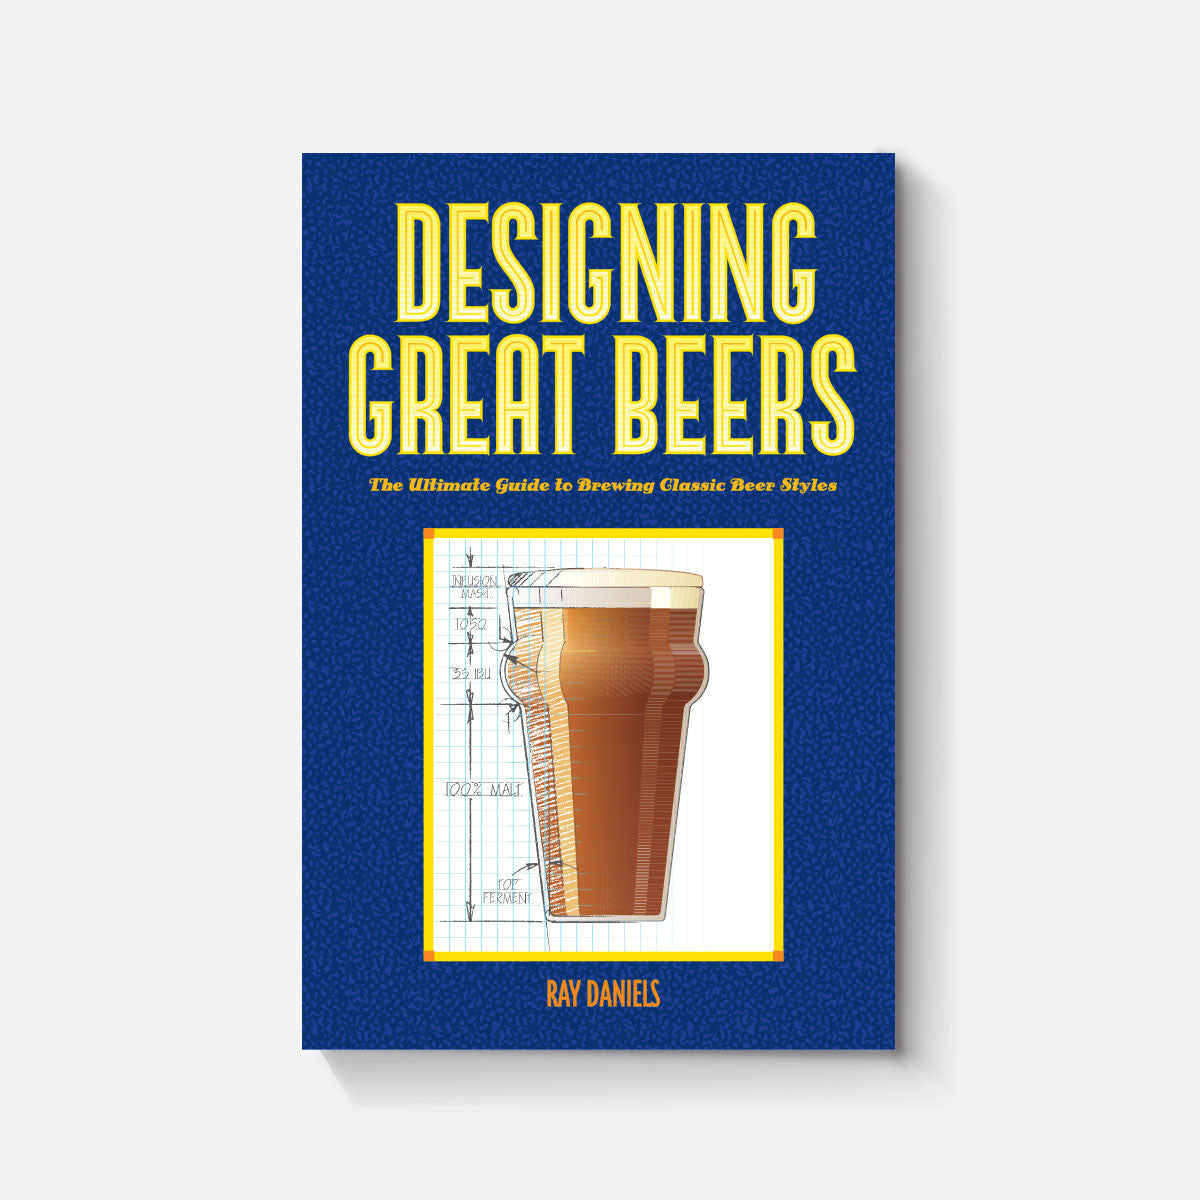 Designing great beers: the ultimate guide to brewing classic beer.